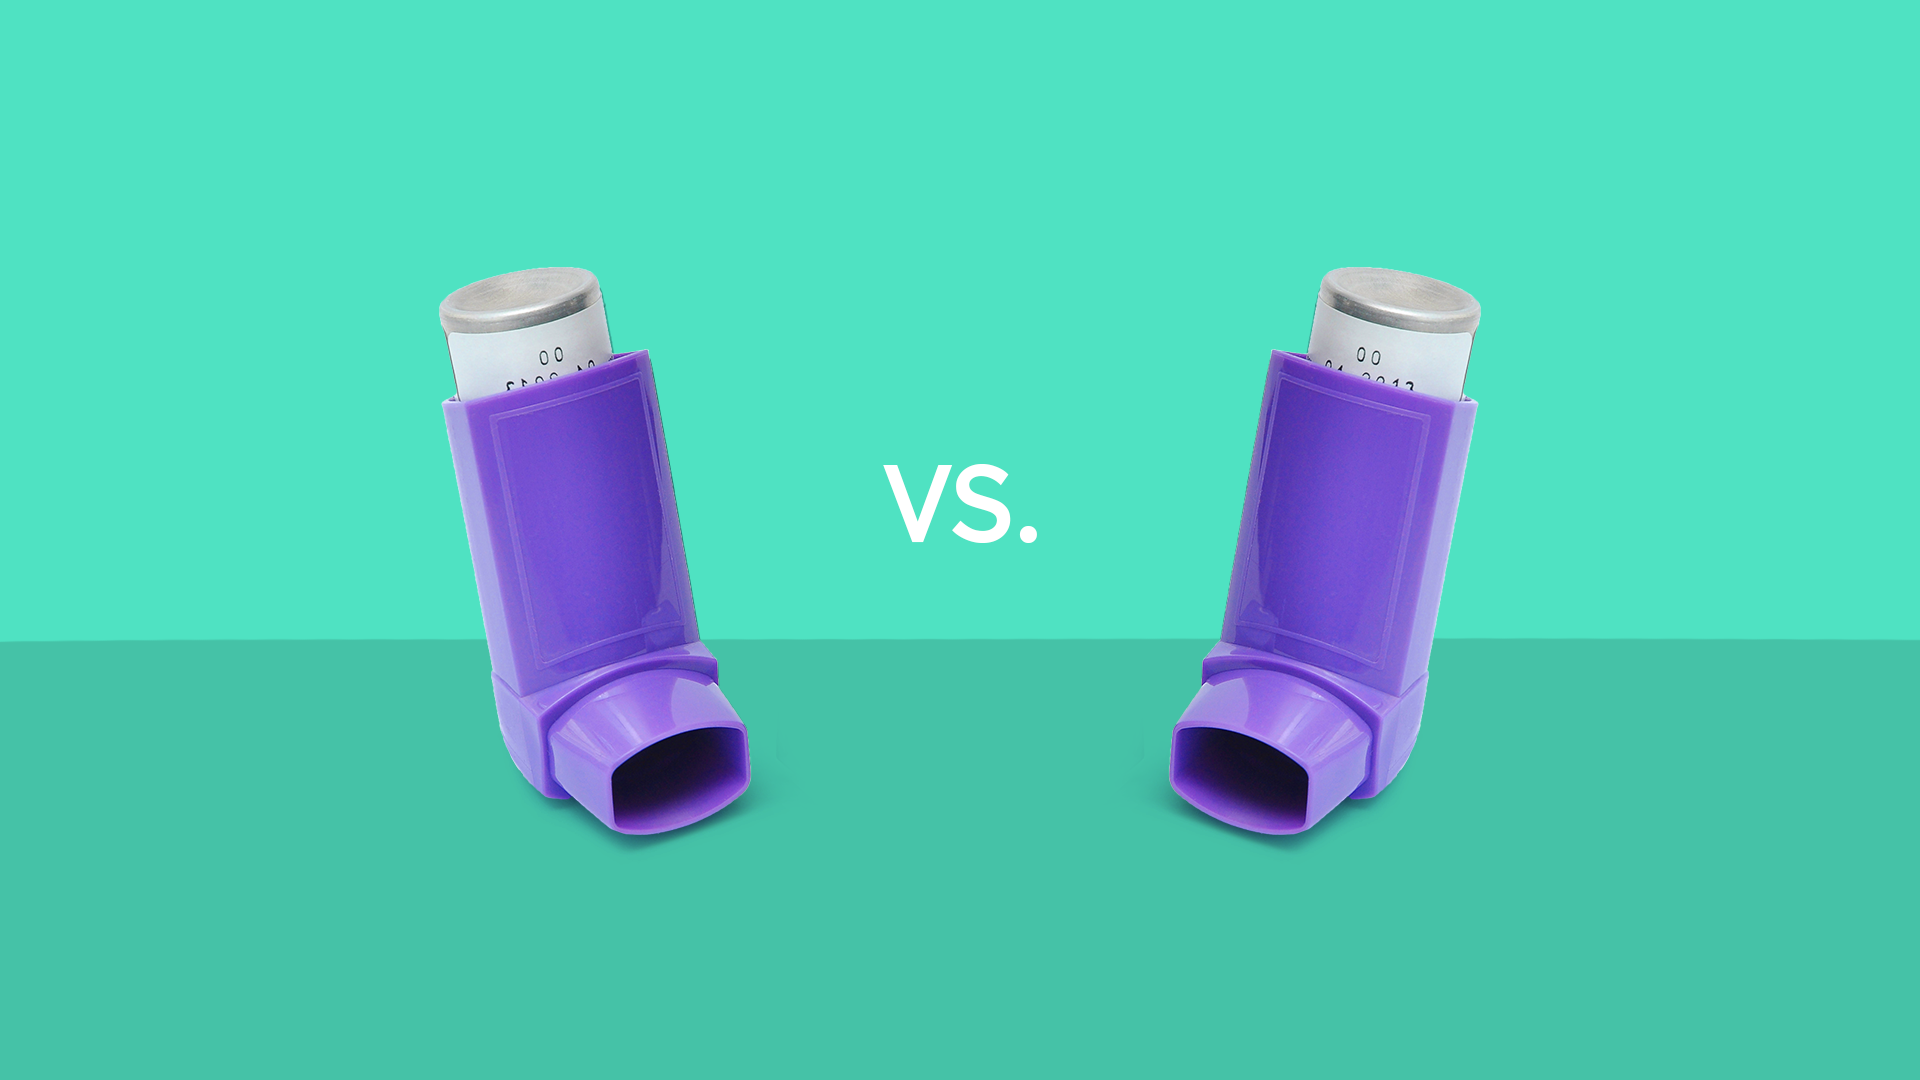 Incruse Ellipta vs. Spiriva: Differences, similarities, and which is better for you